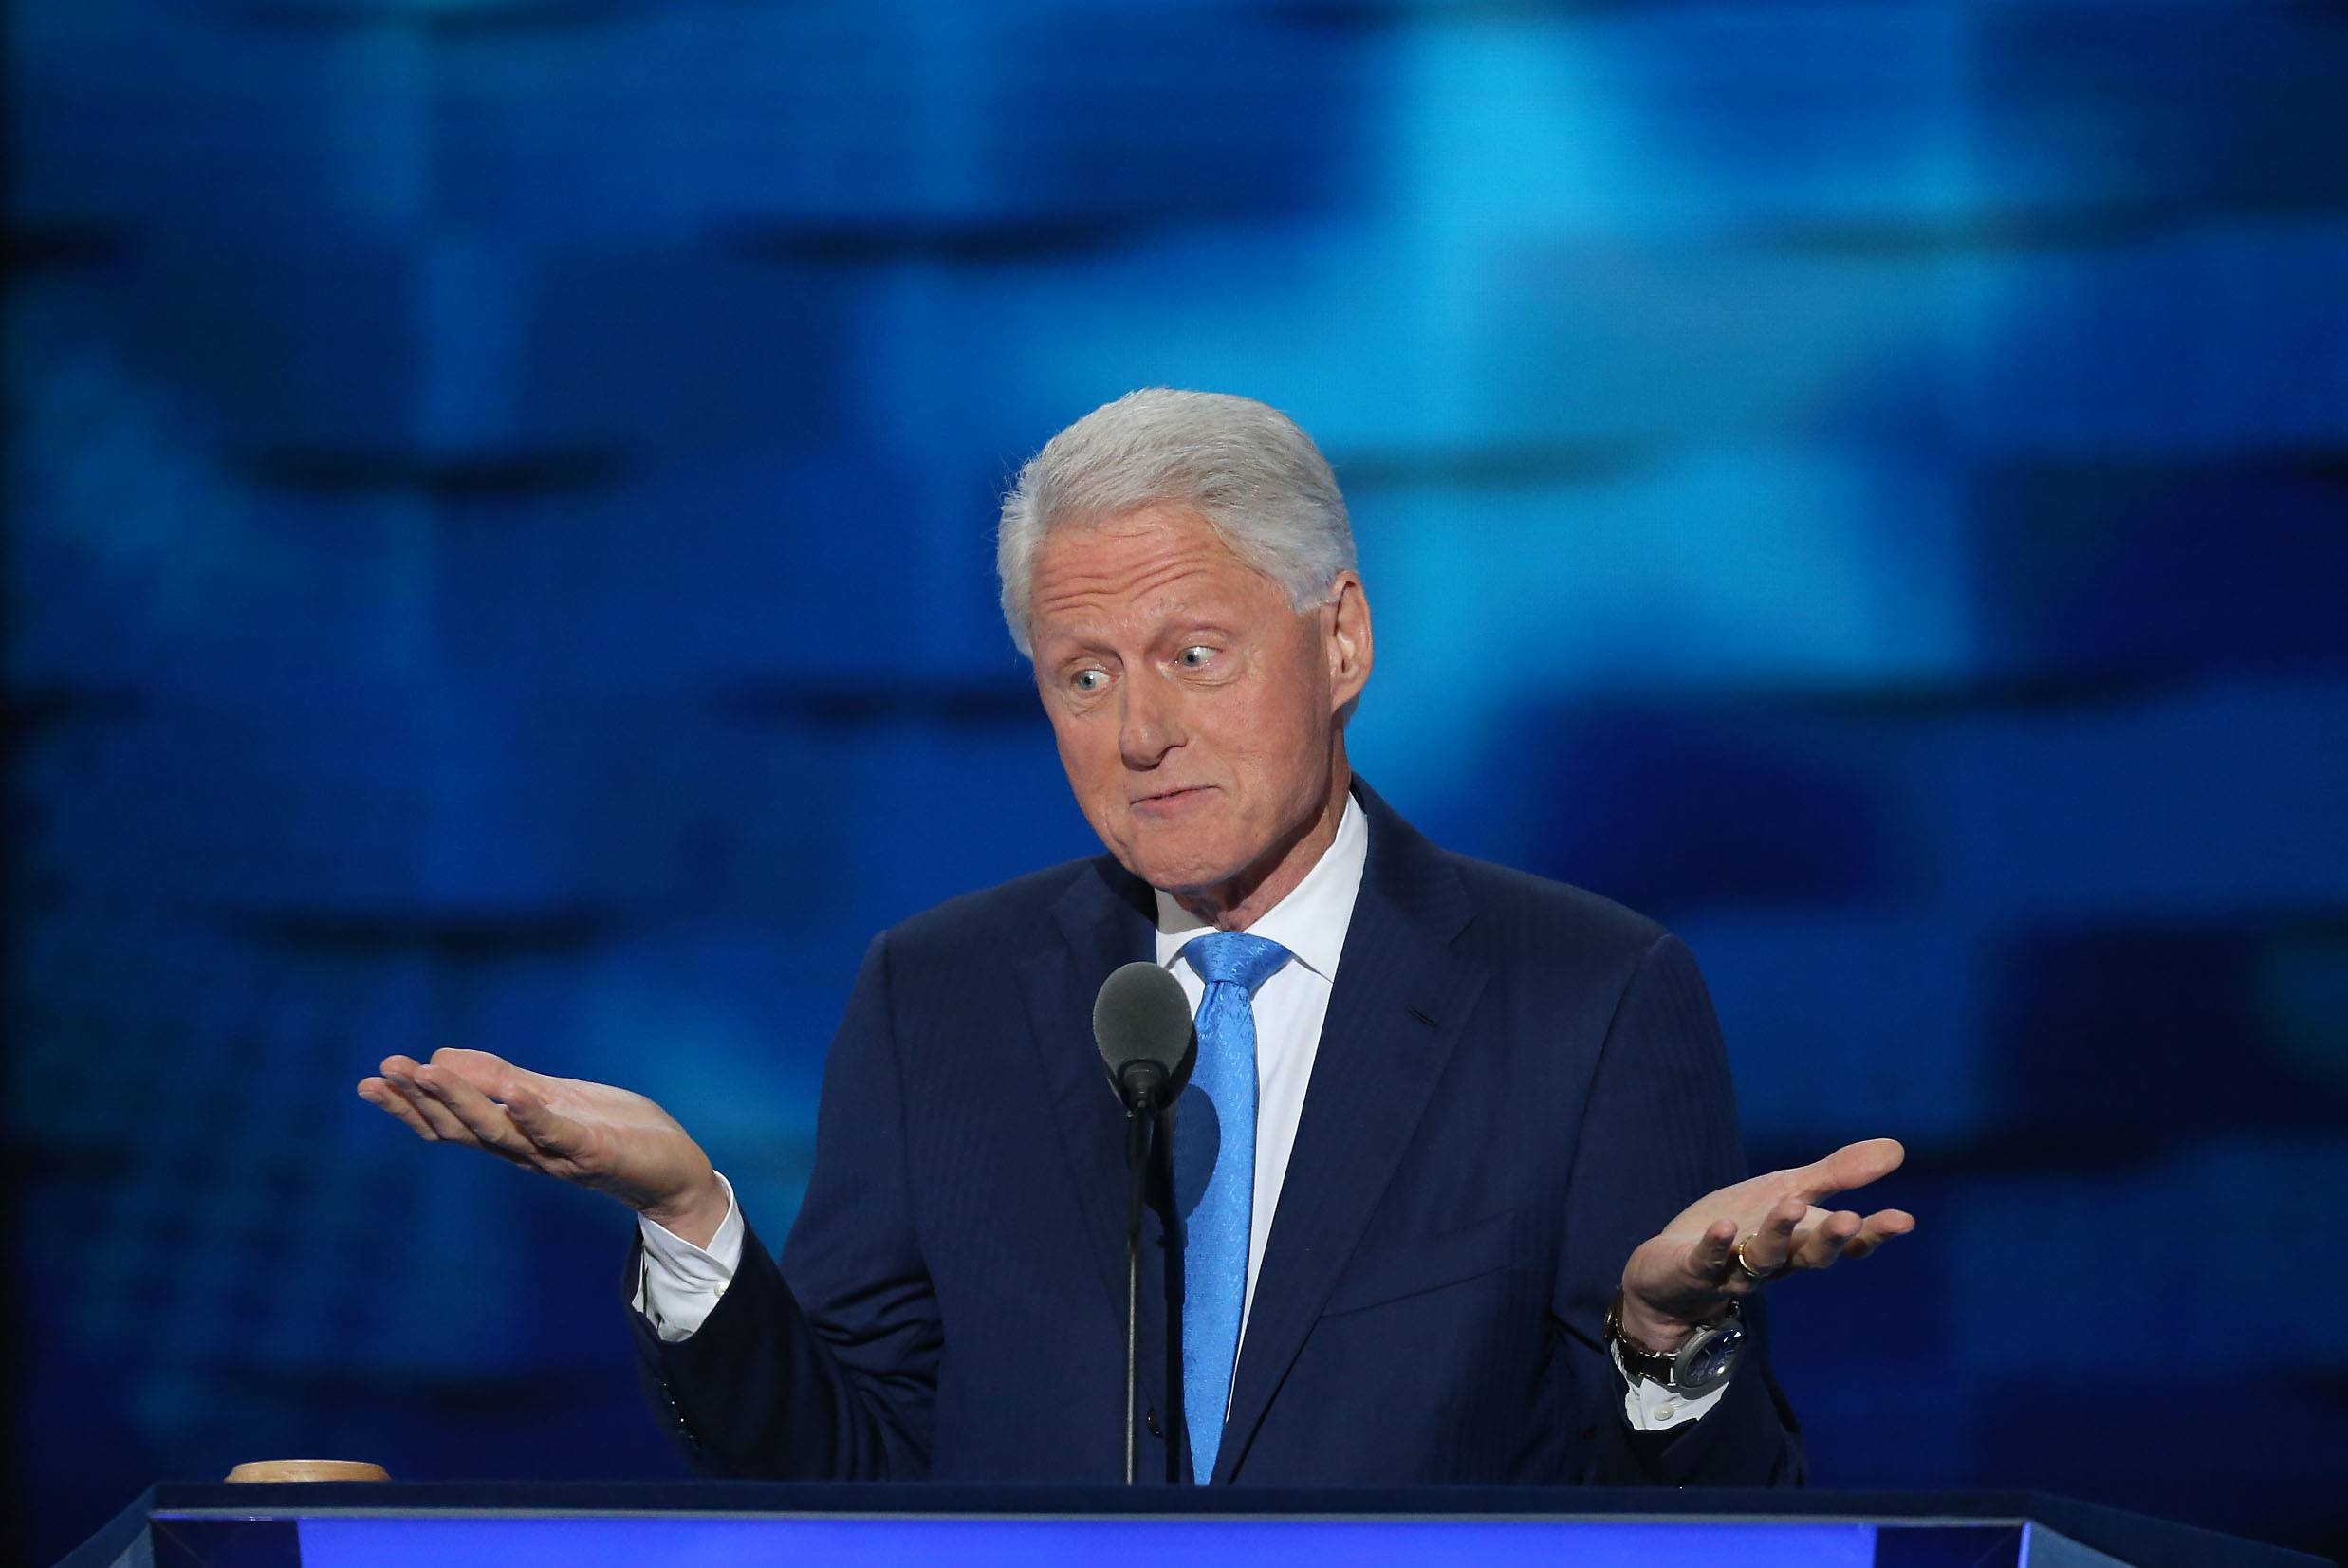 Former U.S. president Bill Clinton talked about Park Ridge in his convention speech Tuesday.